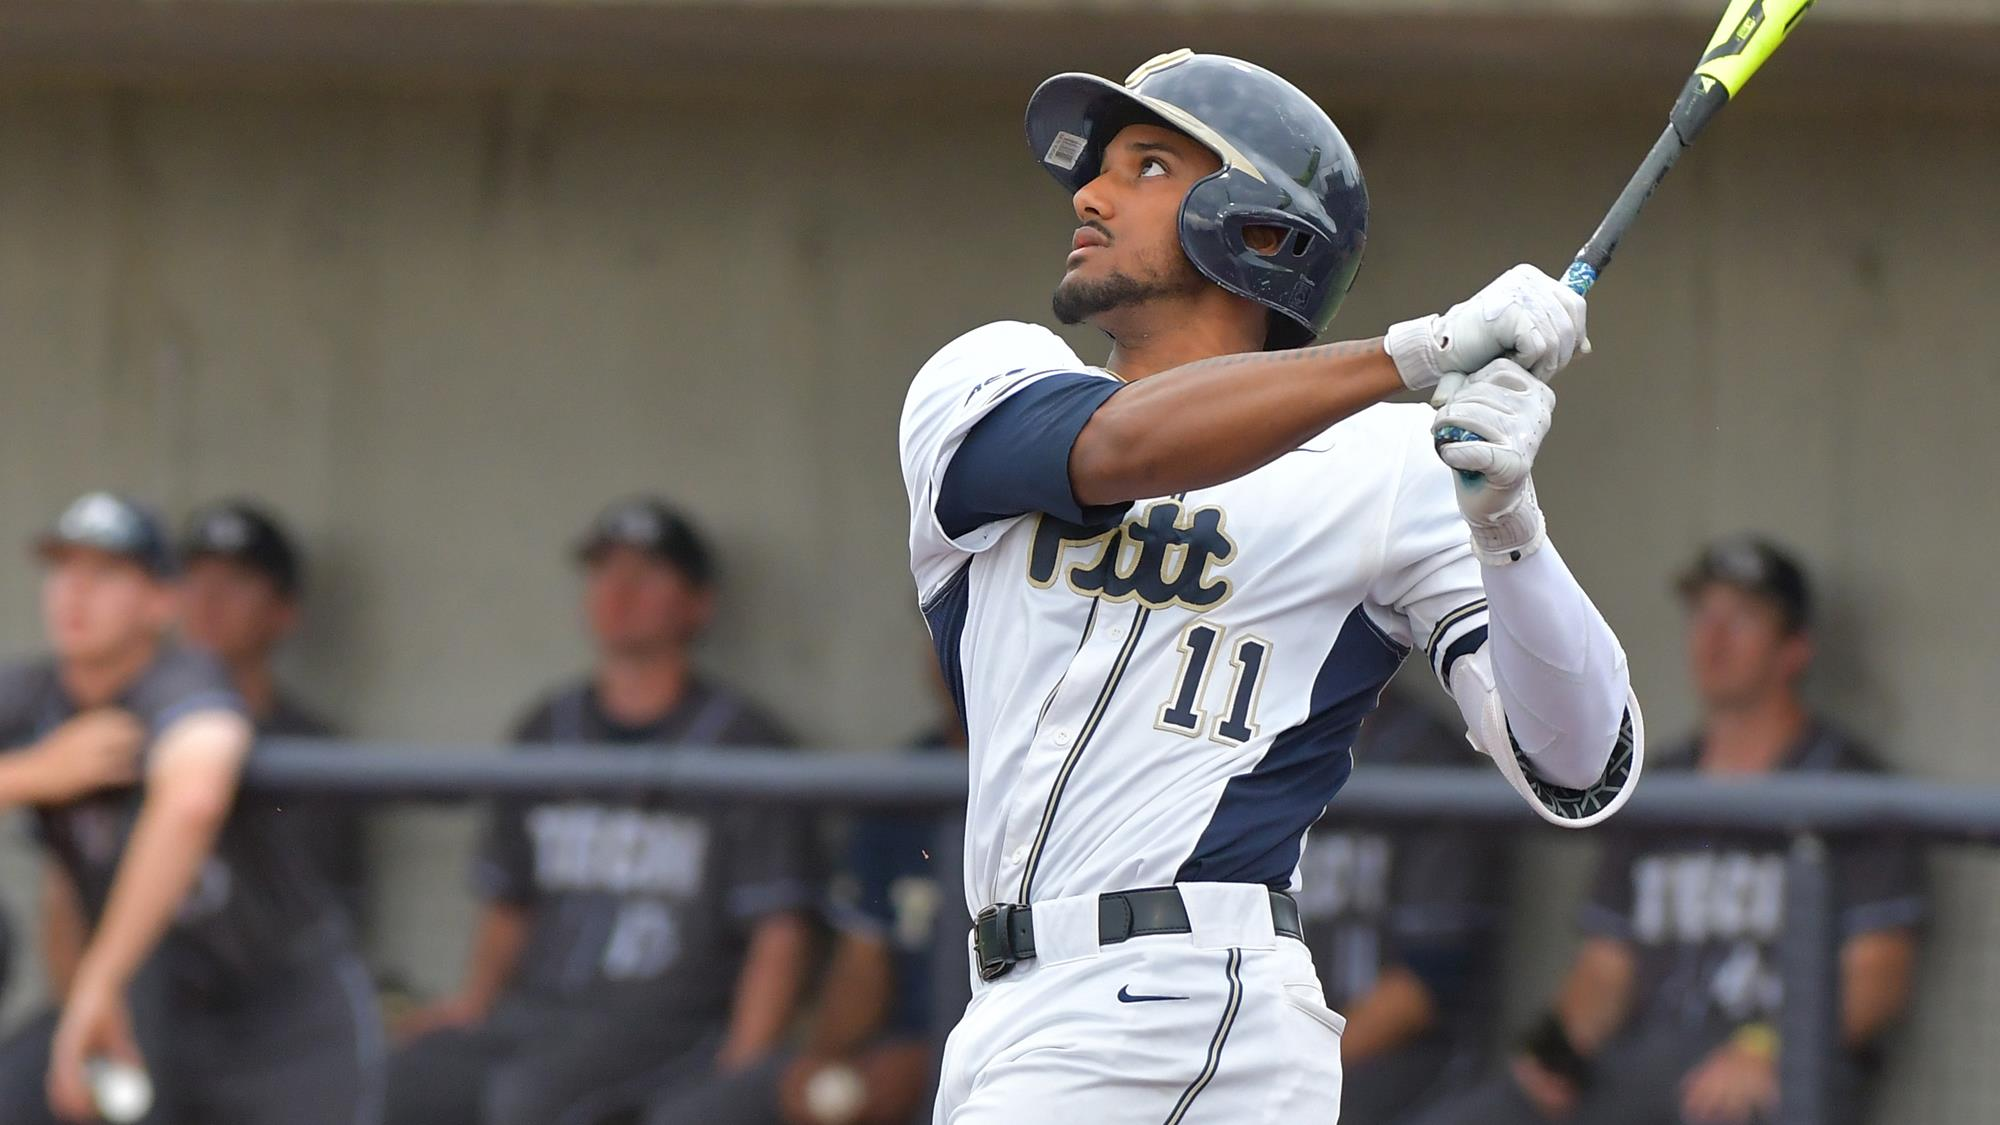 Sabino Selected by St  Louis in MLB Draft - Pitt Panthers #H2P